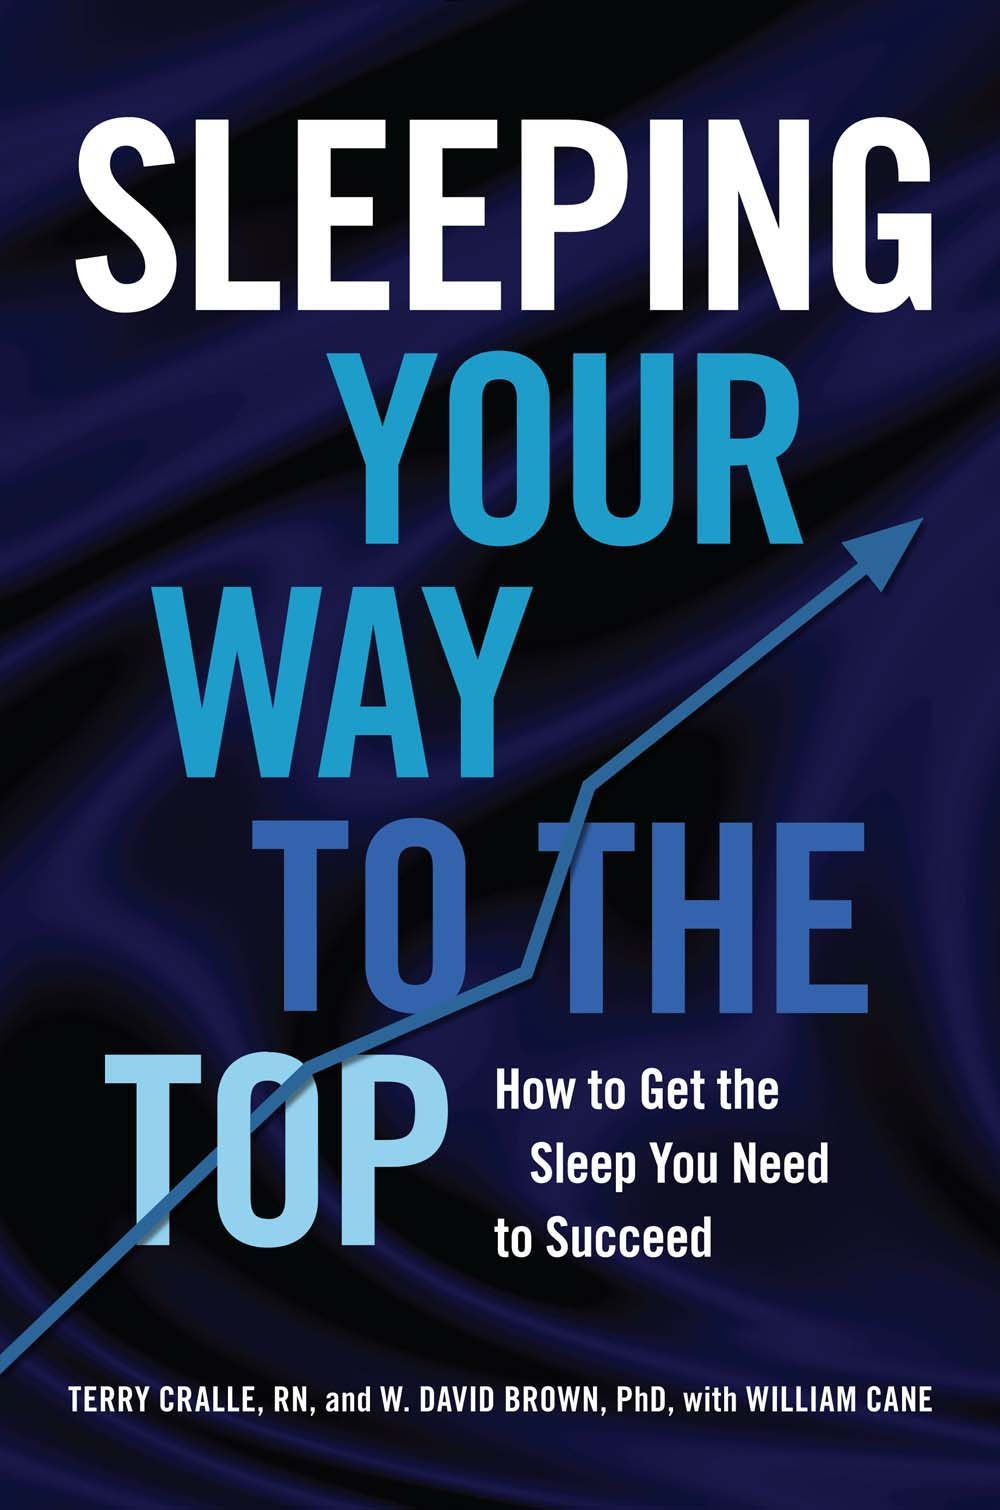 Sleeping Your Way To The Top: How To Get The Sleep You Need To Succeed:  Terry Cralle, W David Brown, William Cane: 9781454918486: Amazon: Books